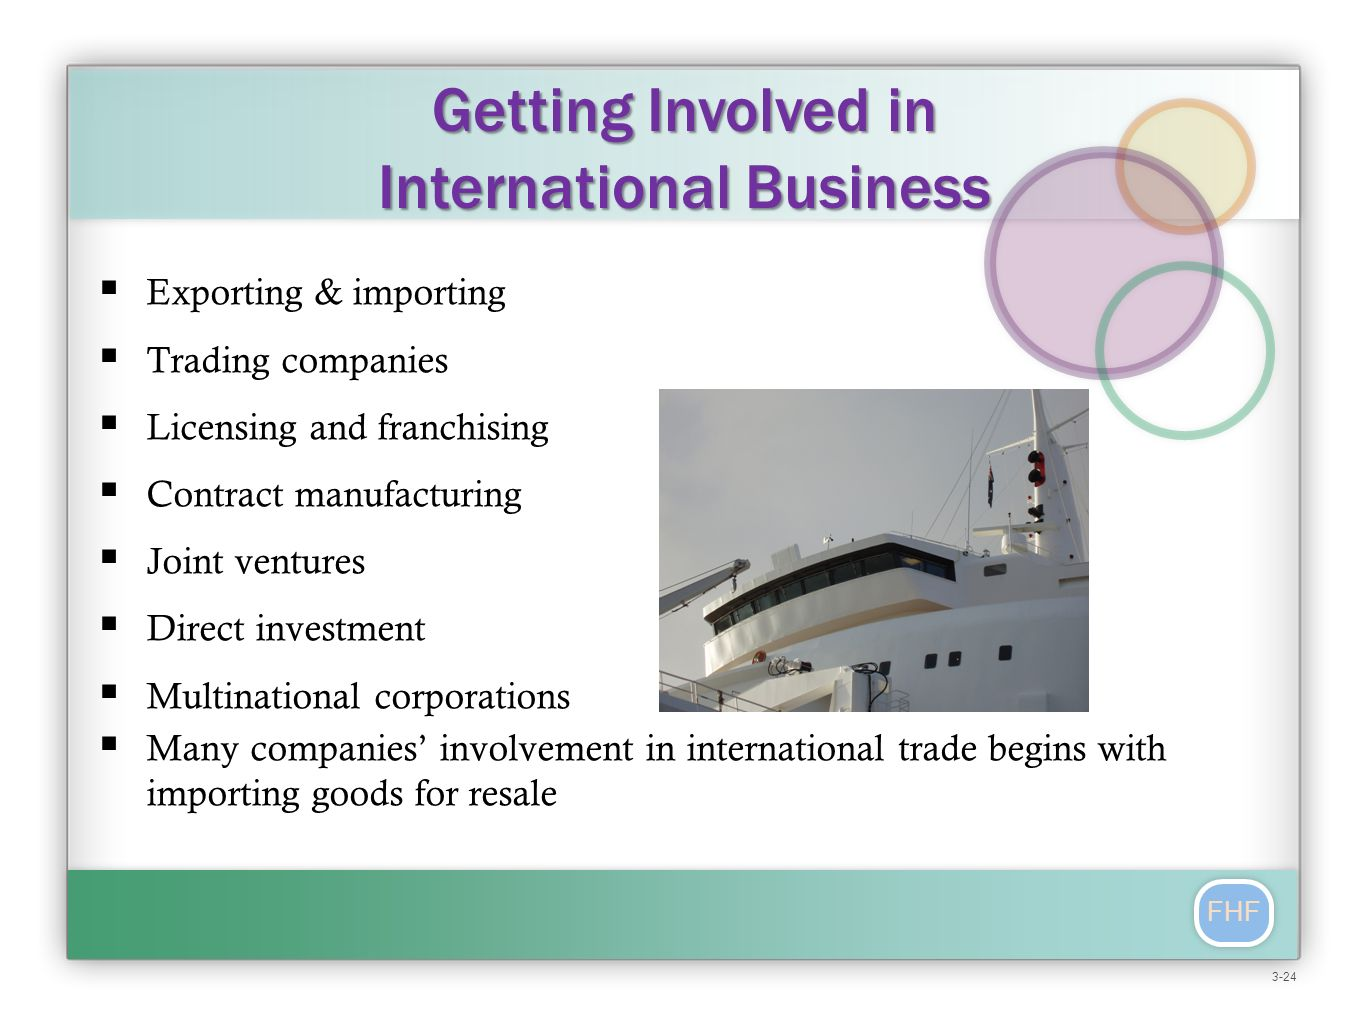 modes of entering international business Licensing an international entry mode involving the granting of permission by the licenser to the licensee to use intellectual property rights, such as trademarks, patents, or technology, under defined conditions and franchising are two specialized modes of entry that are discussed in more detail in chapter 9 exporting, importing, and global.